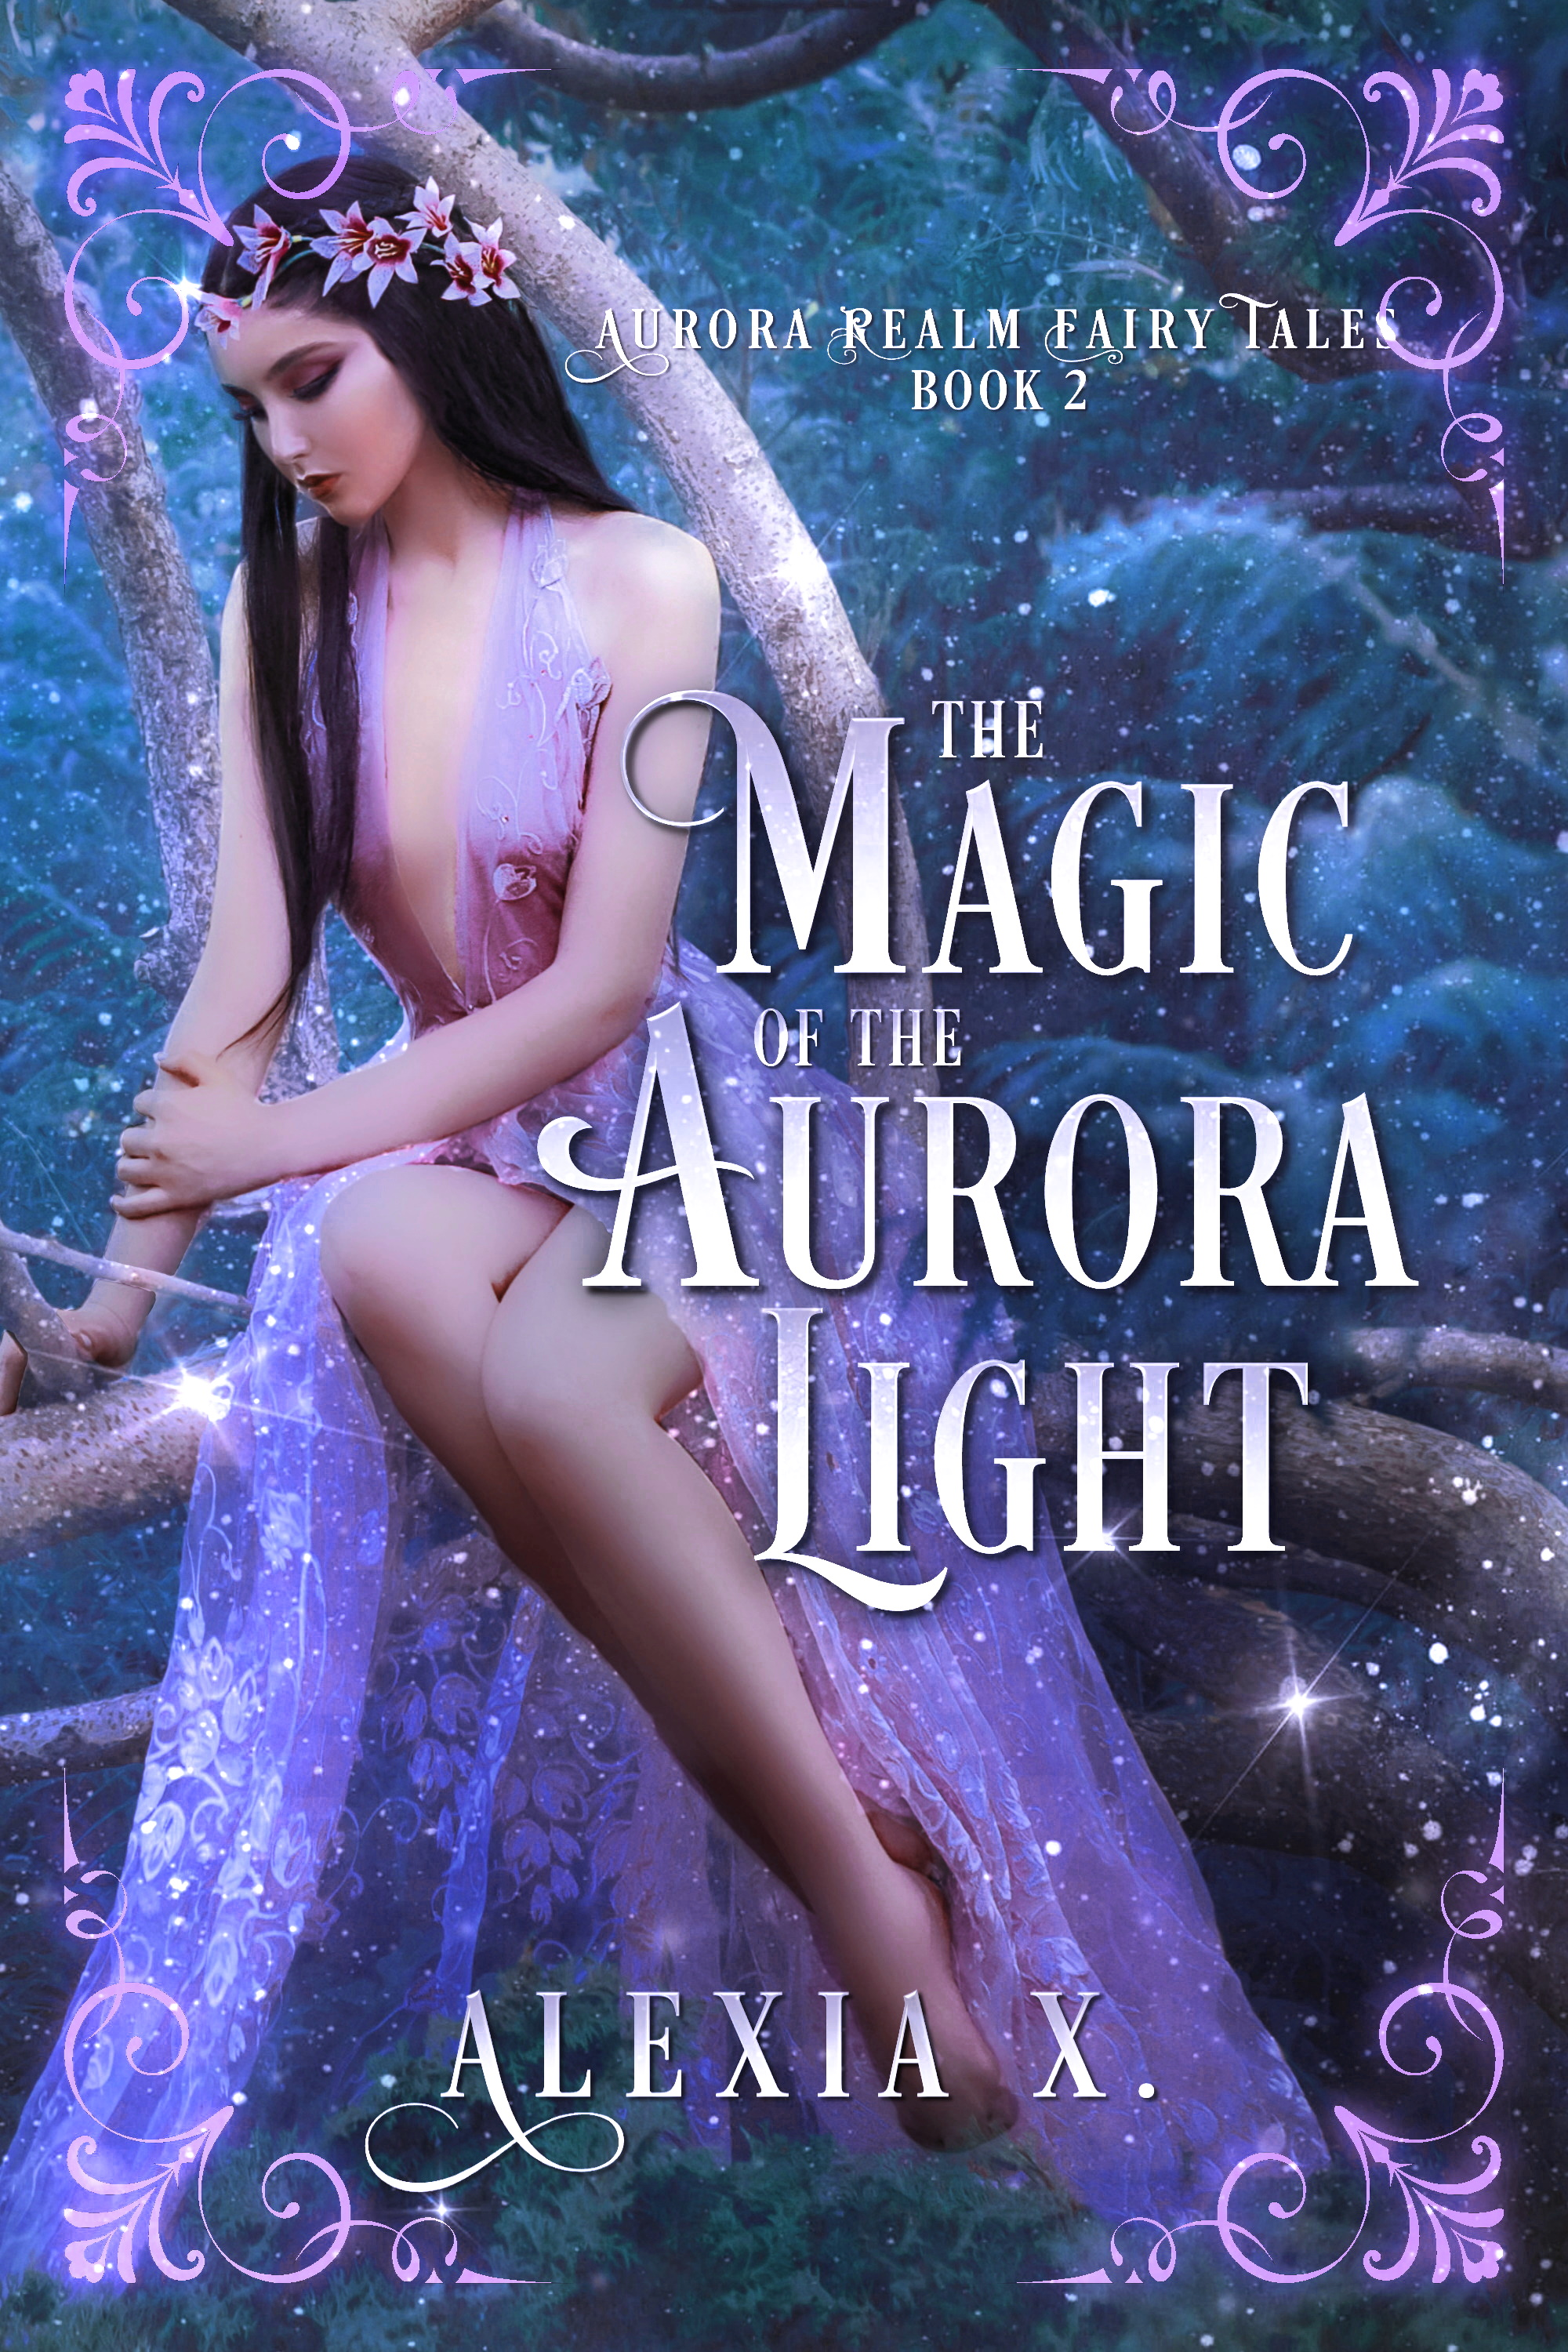 The Magic of the Aurora Light